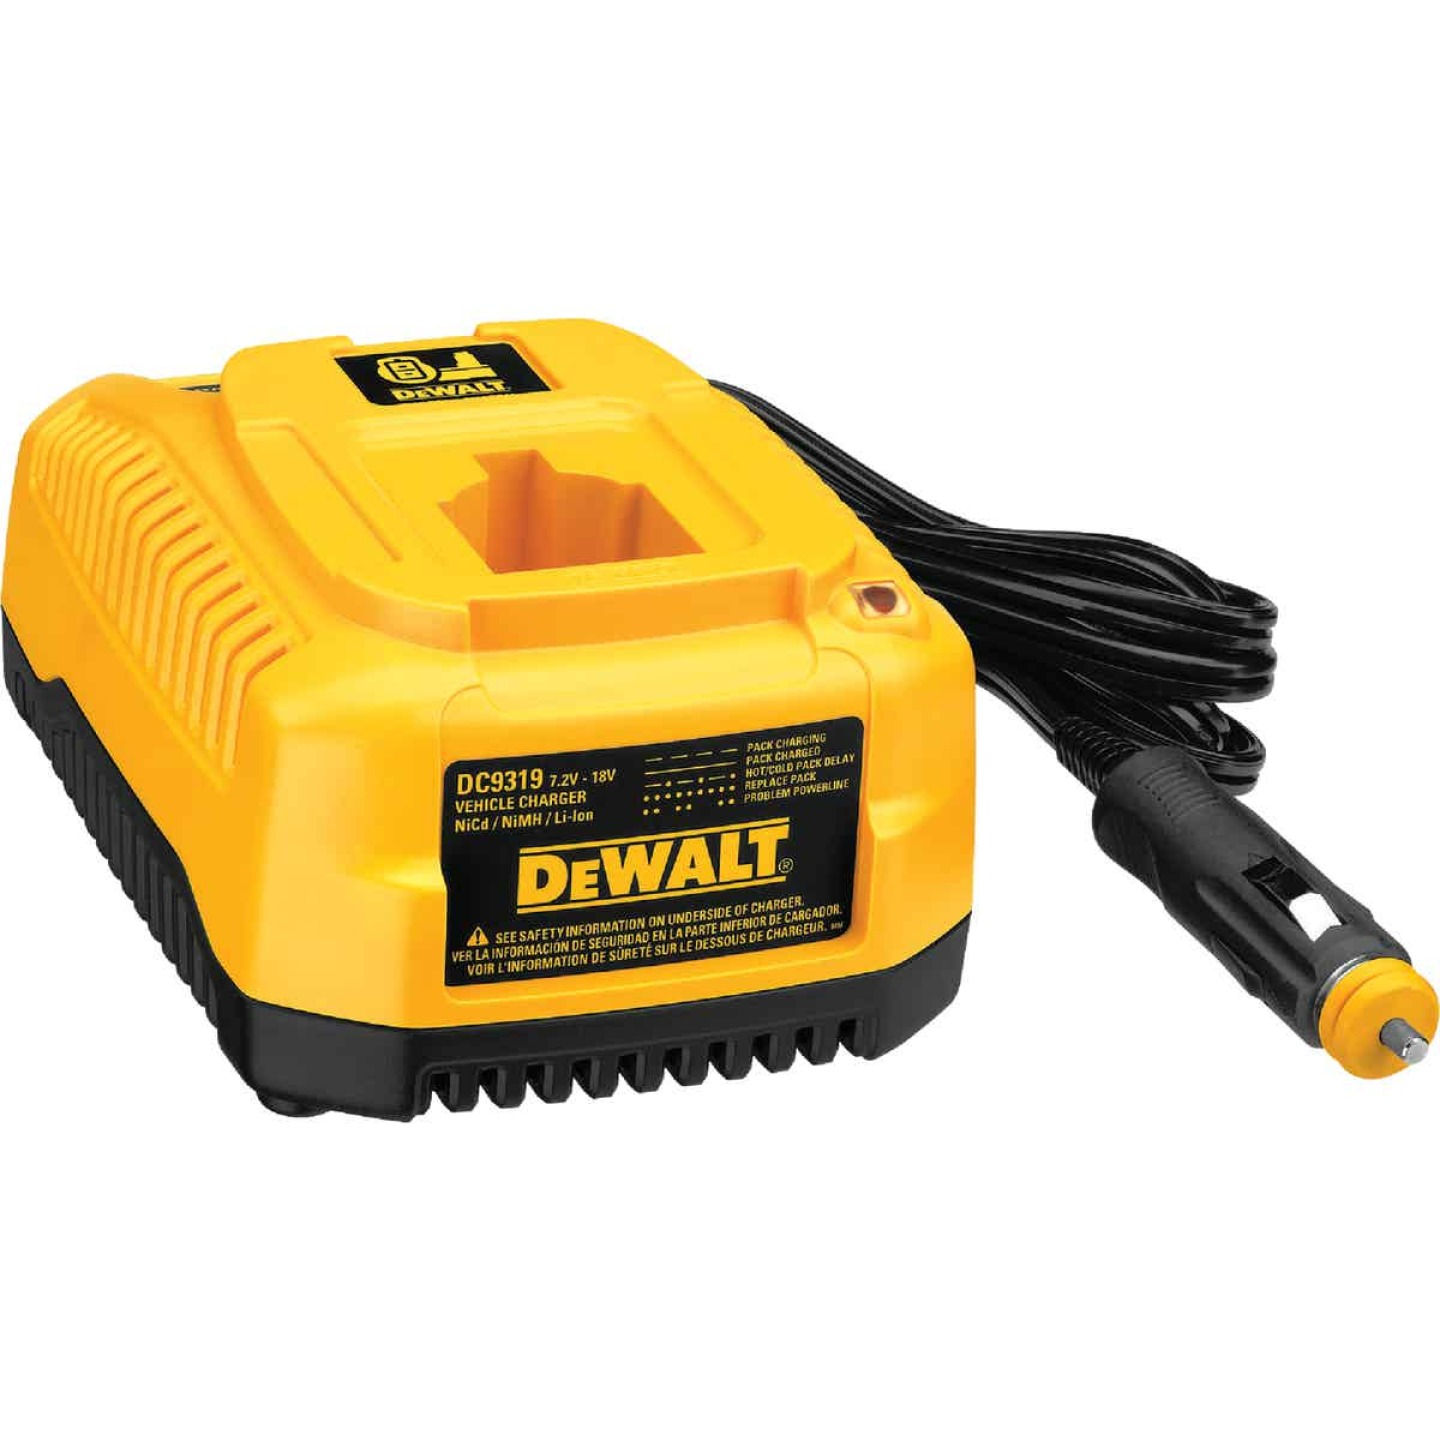 DeWalt 7.2-Volt to 18-Volt Nickel-Cadmium/Nickel-Metal Hydride/Lithium-Ion Vehicle Battery Charger Image 1